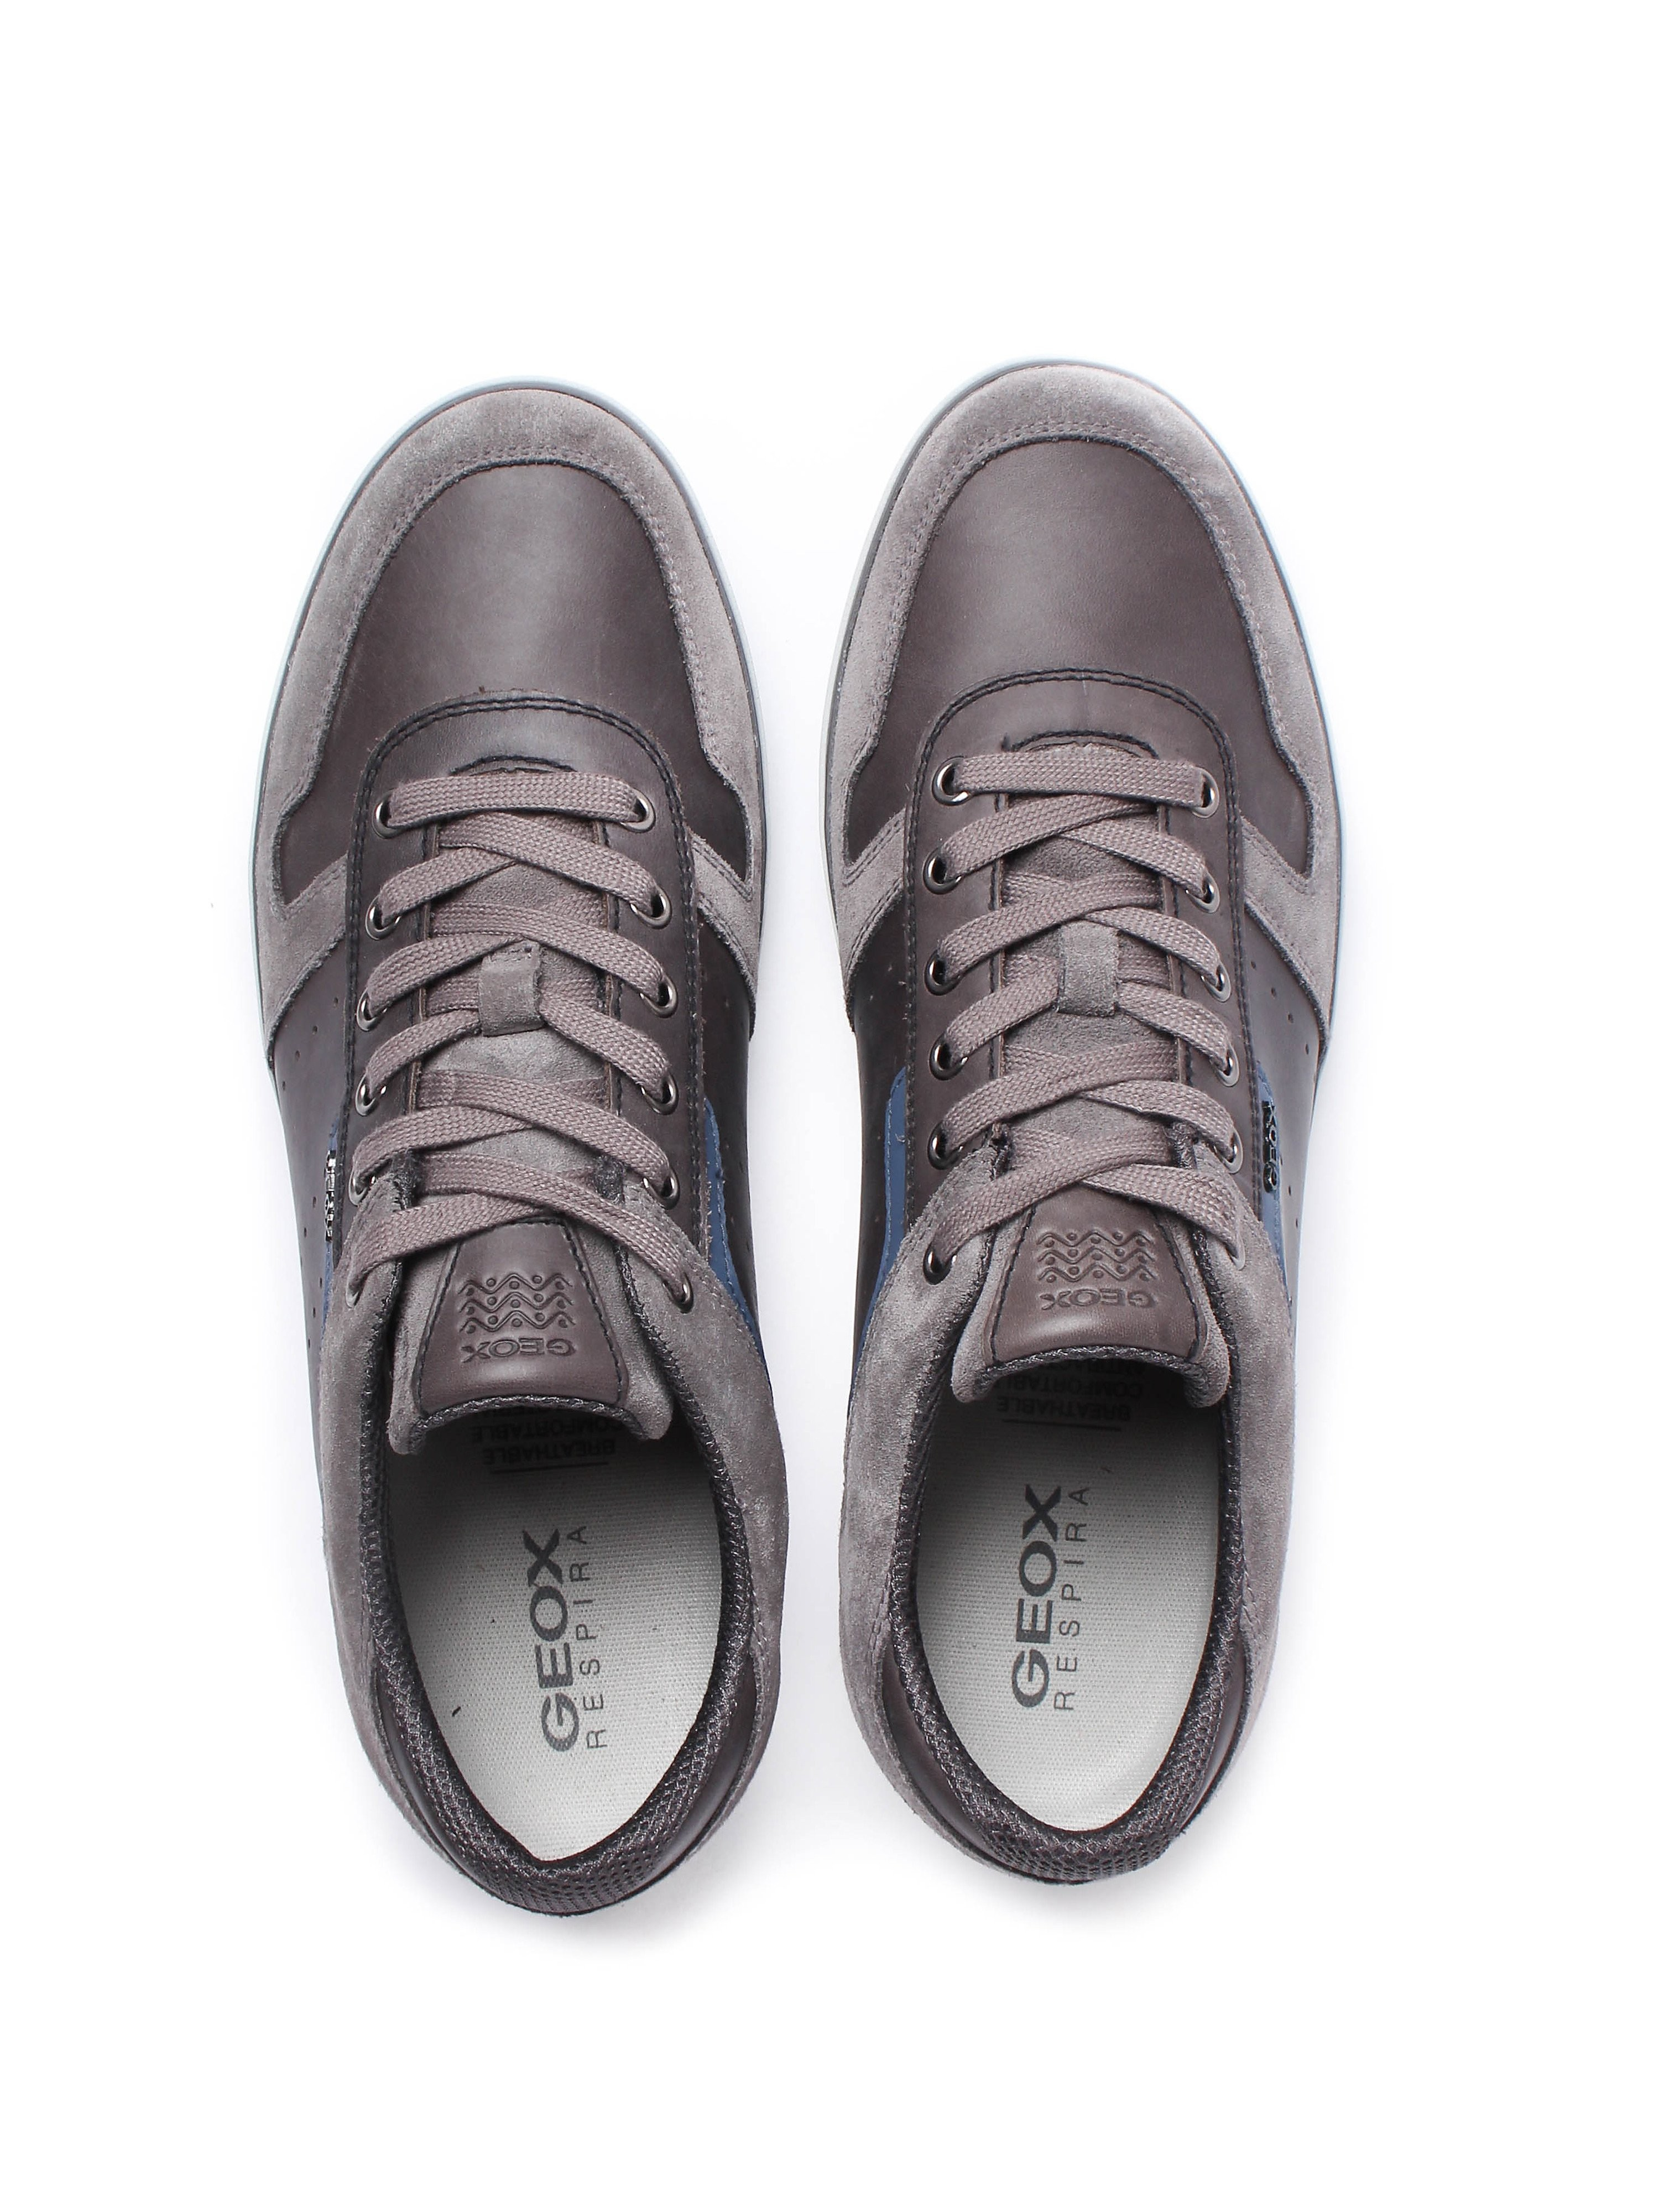 Geox Men's Box Waxed Leather & Suede Trainers - Anthracite